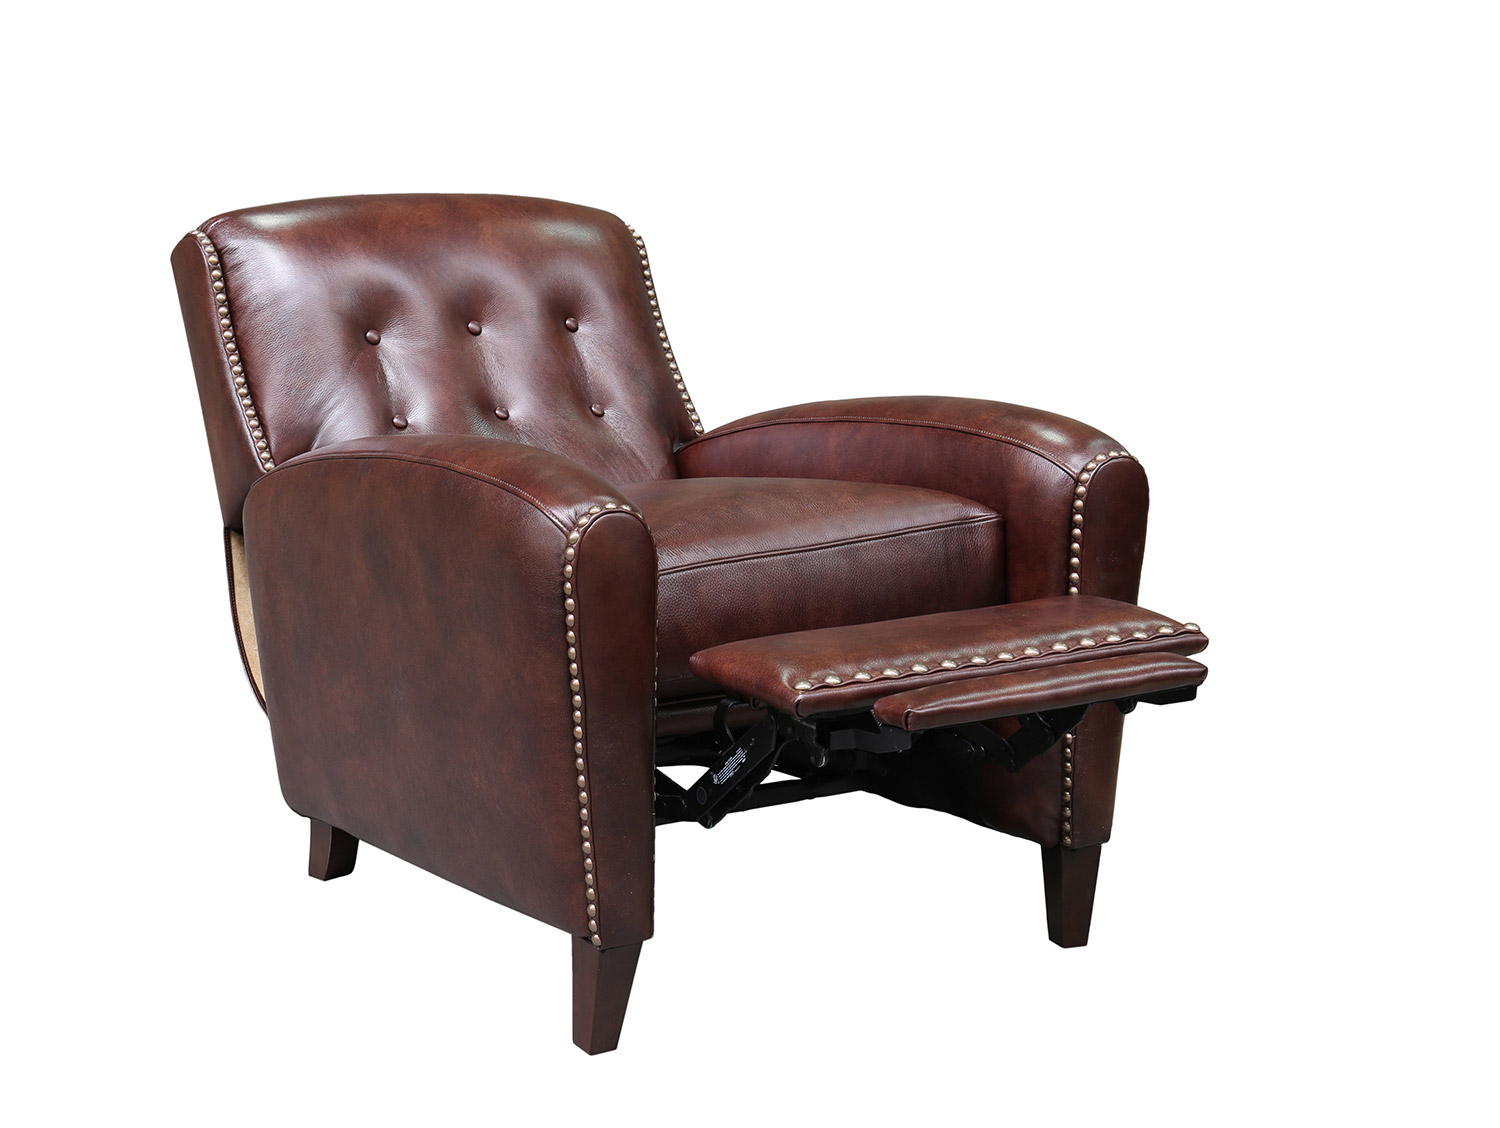 Barcalounger Willoughby Recliner Chair - Wenlock Fudge/All Leather